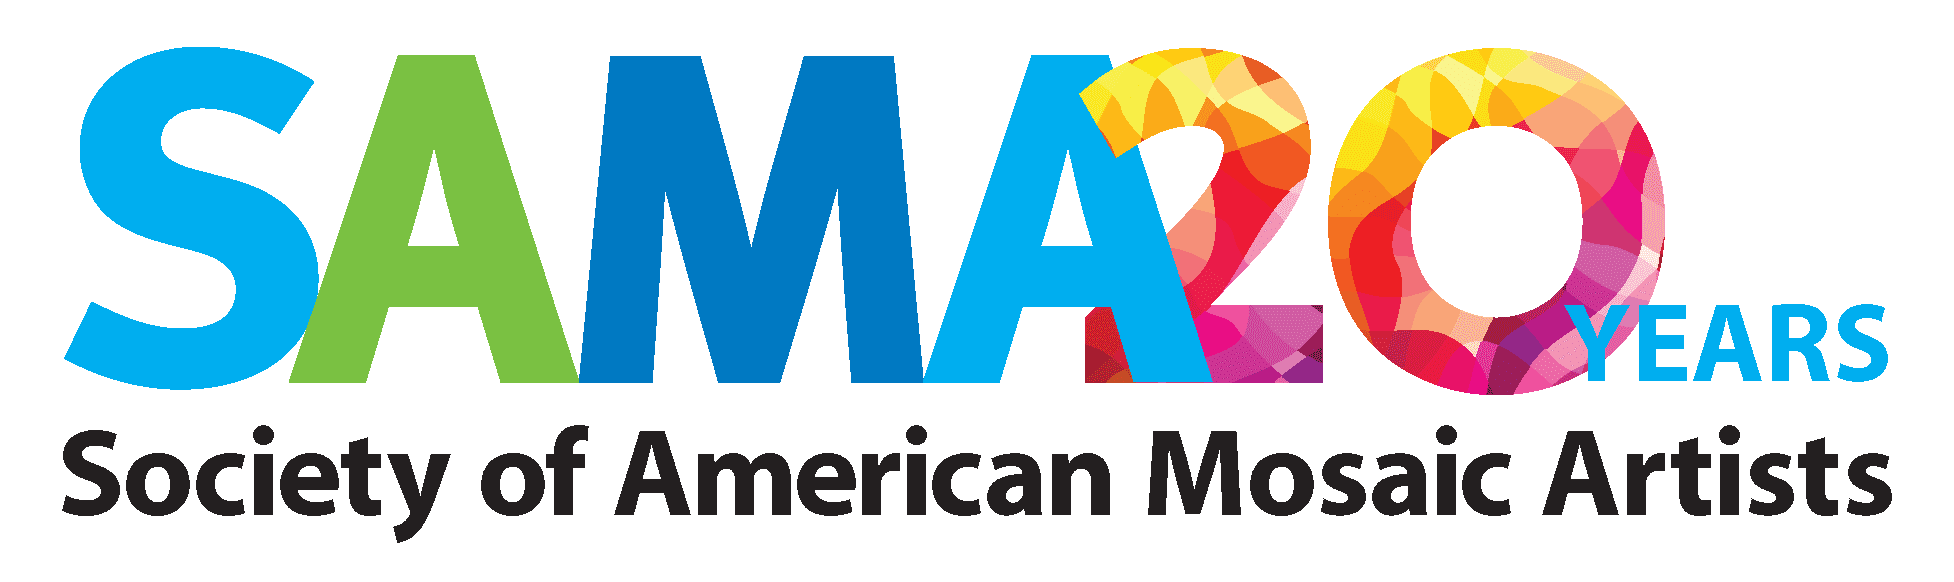 Society of American Mosaic Artists – The Society of American